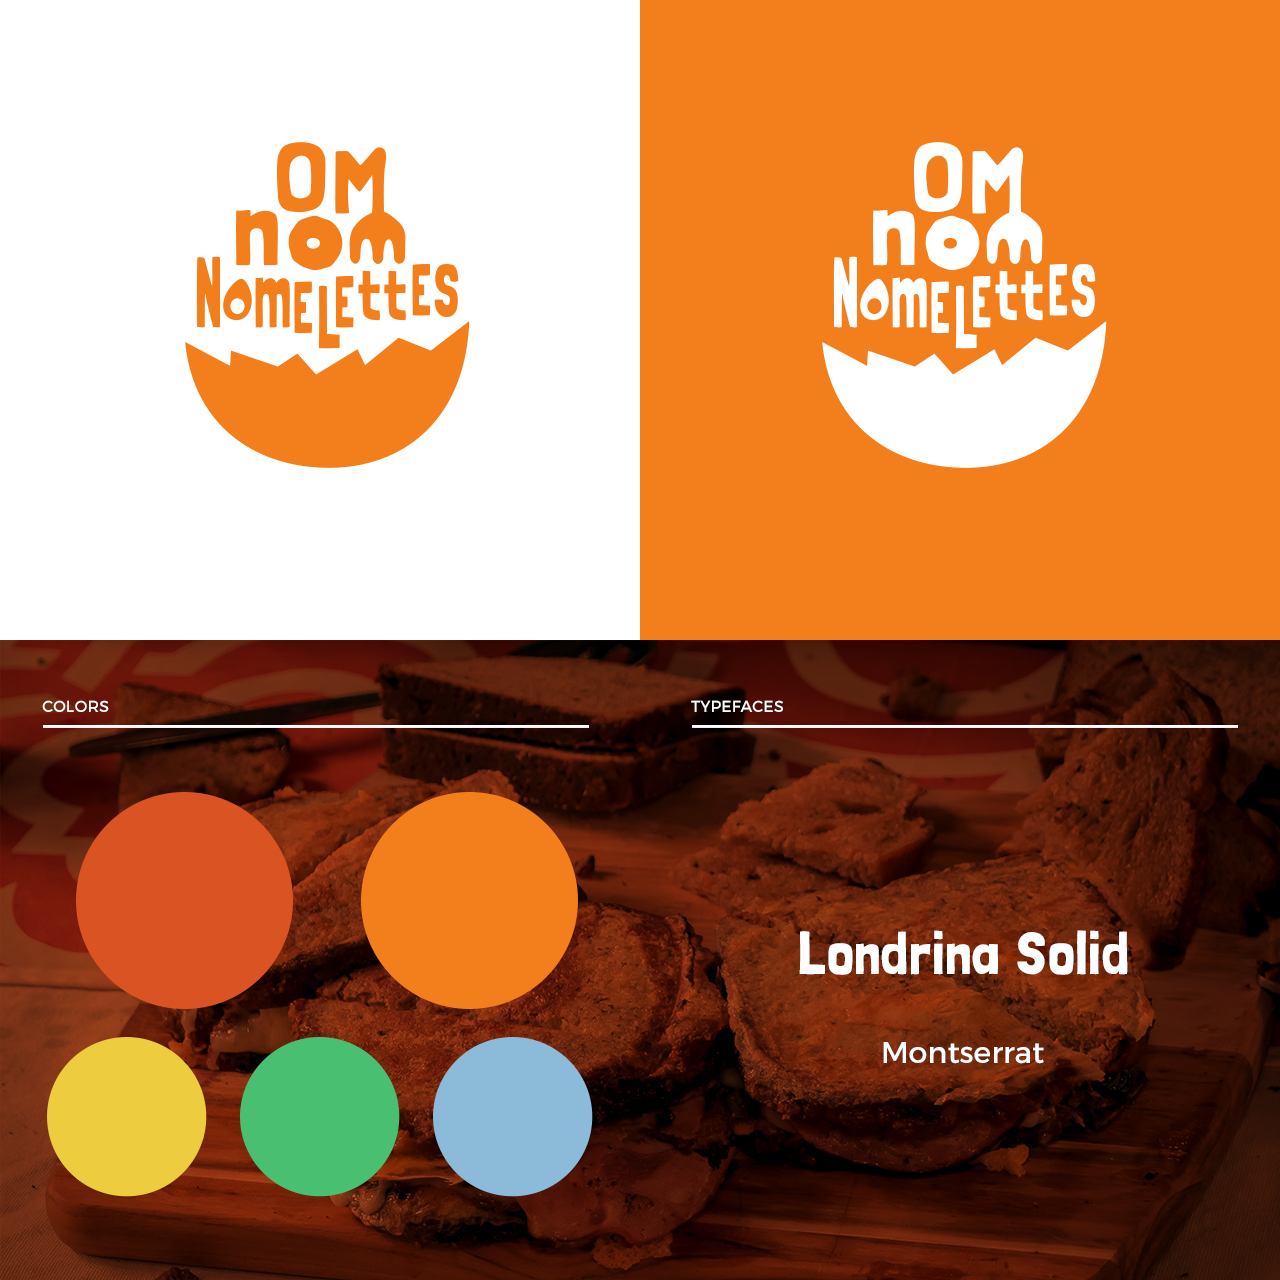 Om Nom Nomelettes branding layout with colors and typefaces